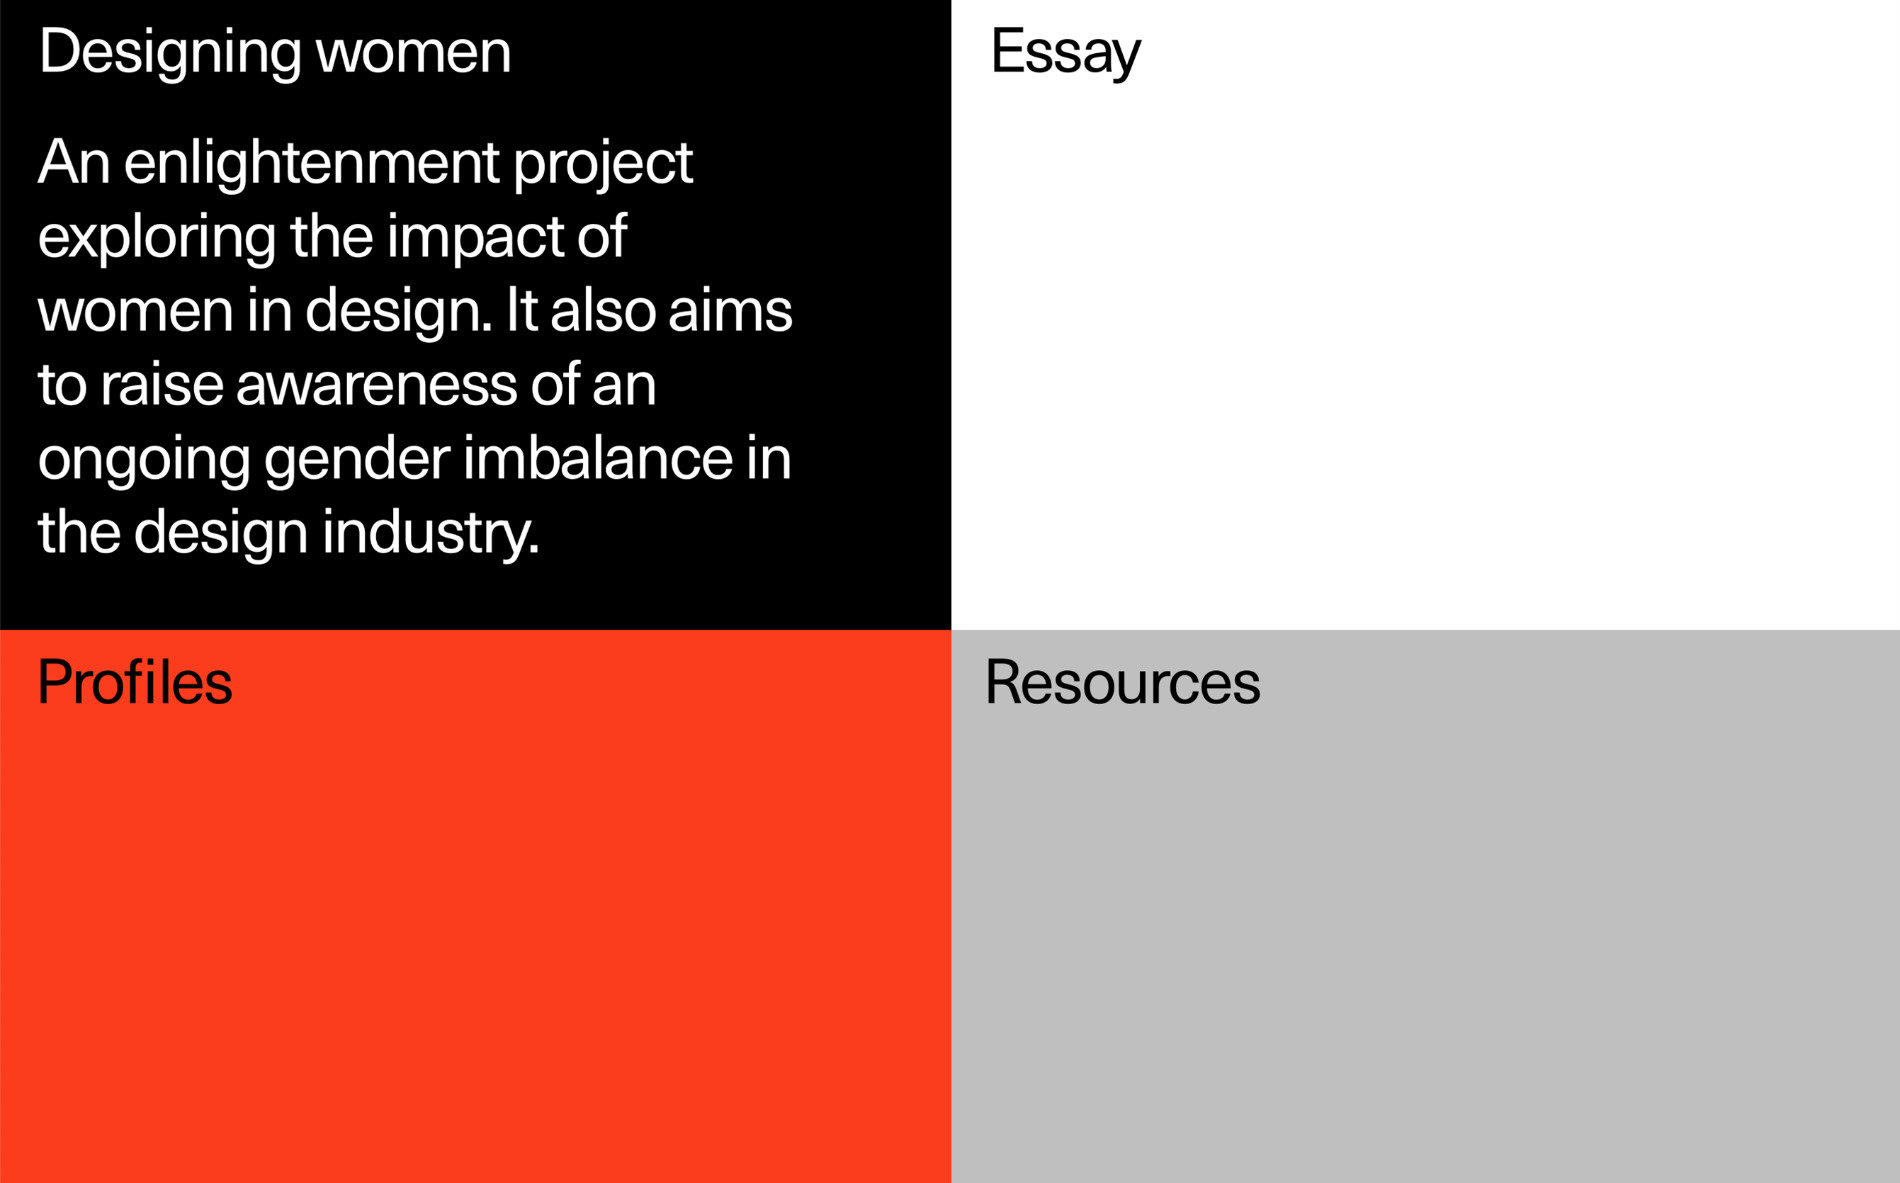 Statement on the web made without coding: Go behind the scenes with Readymag on their new feminist project